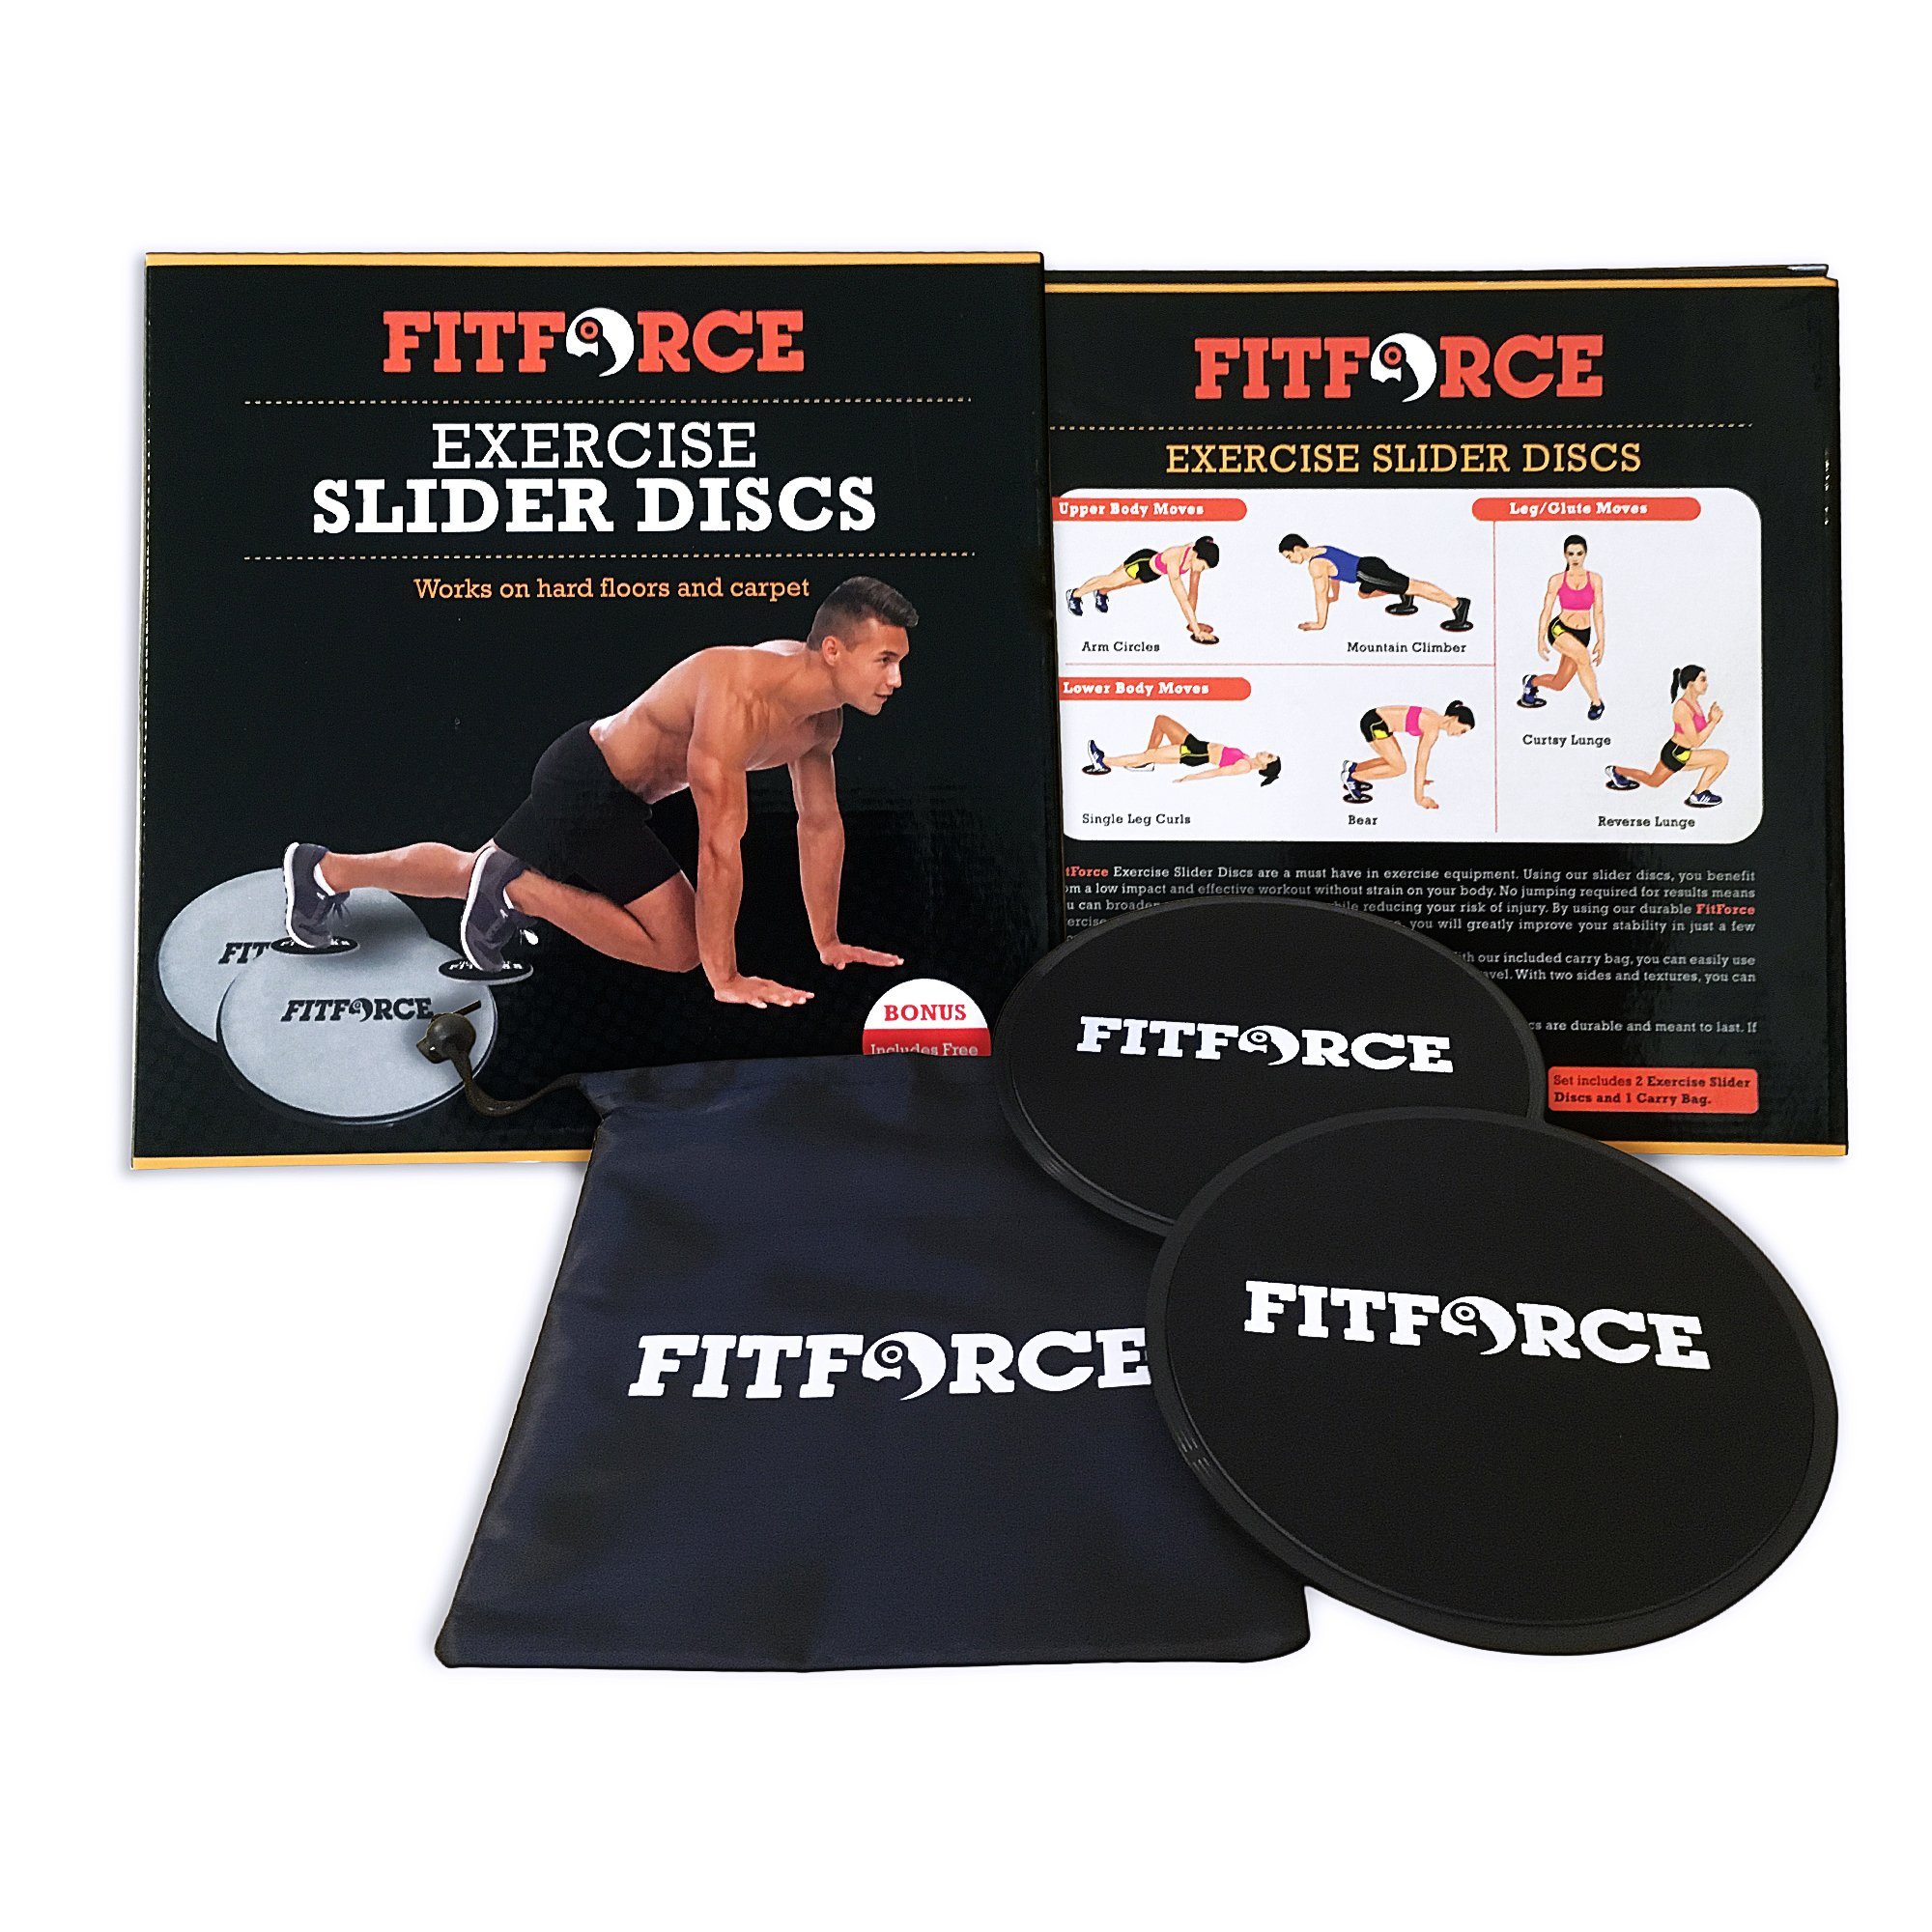 Gliding Discs Core Sliders Calisthenics Strength Training | Set of 2 Discs | Abdominal Exercise Fitness Equipment by FitForce